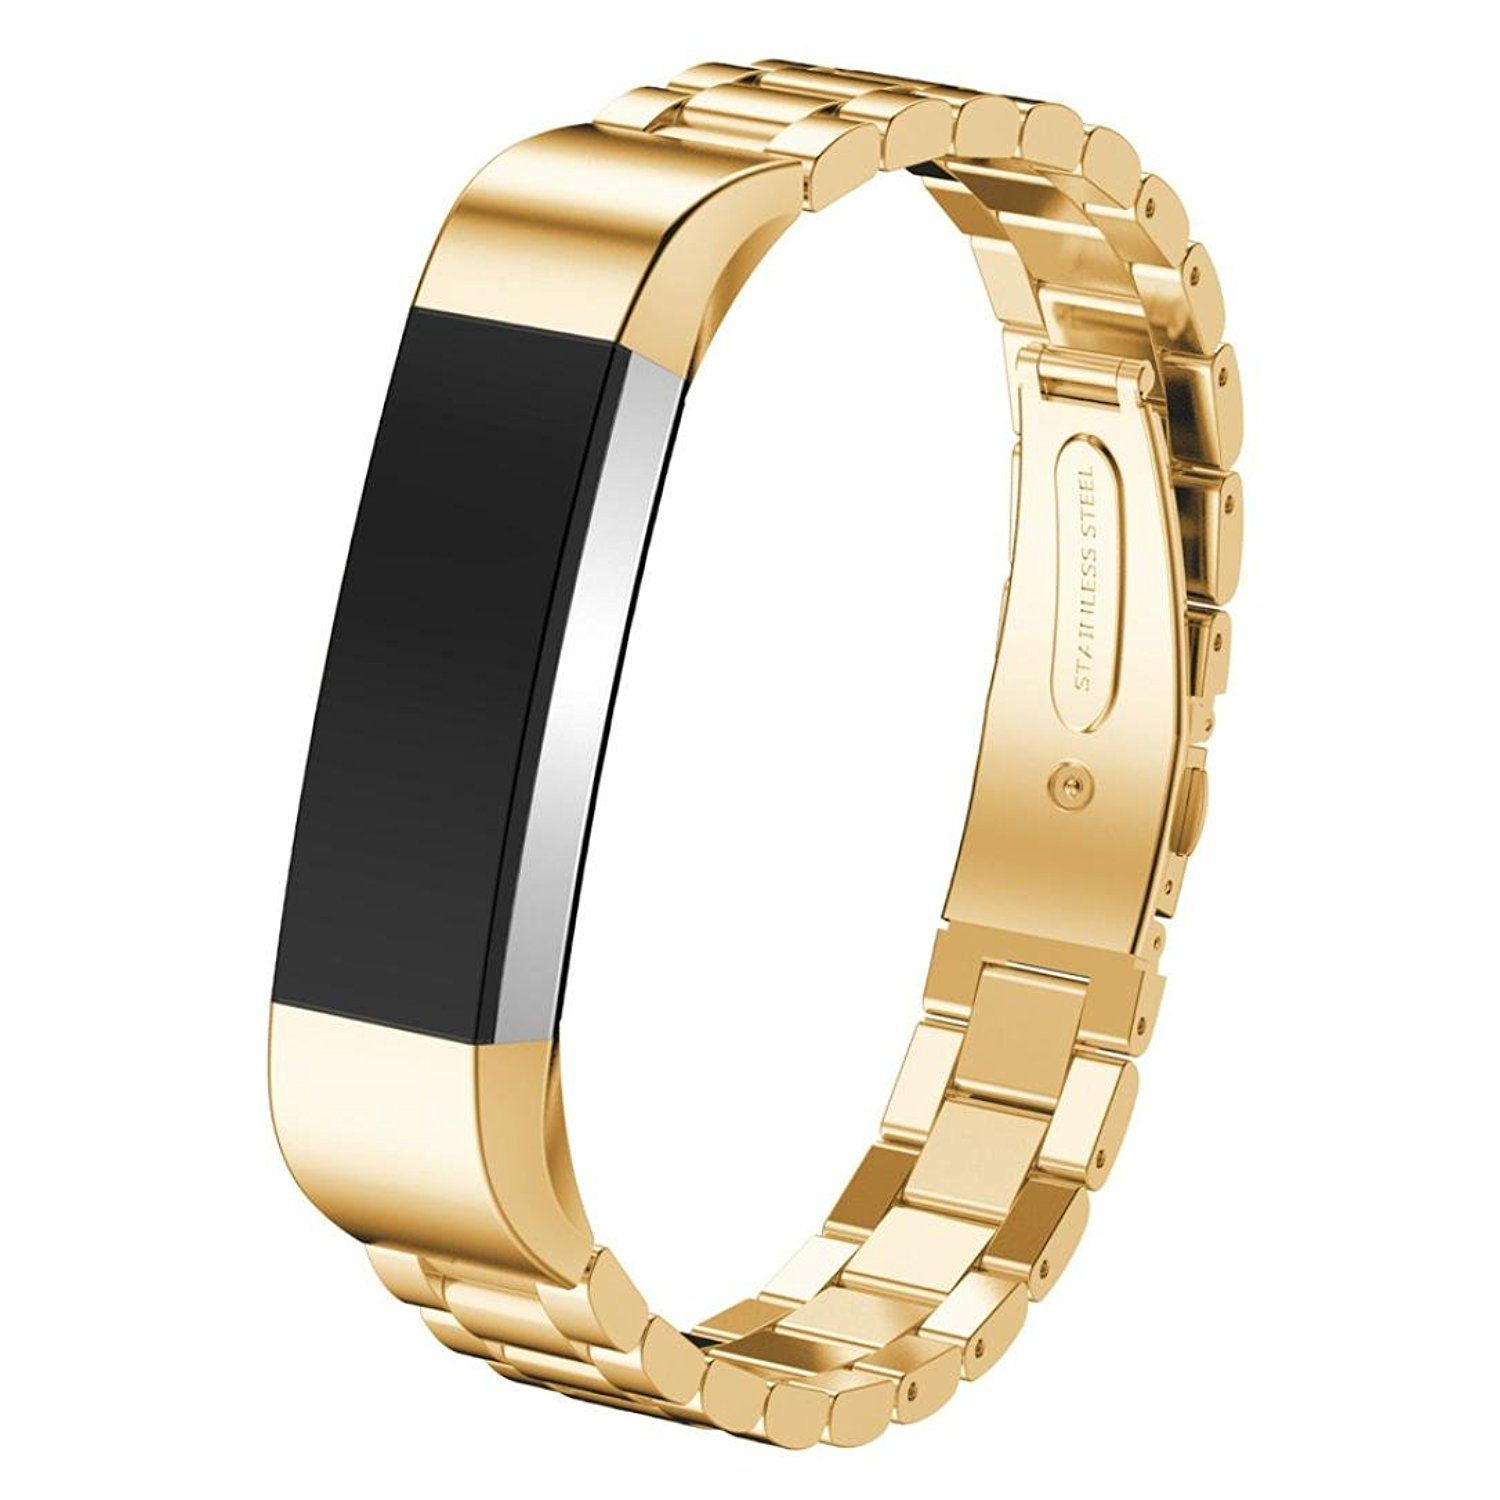 Watch Band, ABC Luxury Stainless Steel Wrist strap Watch Band for Fitbit Alta Smart Watch (Gold): Amazon.ca: Watches